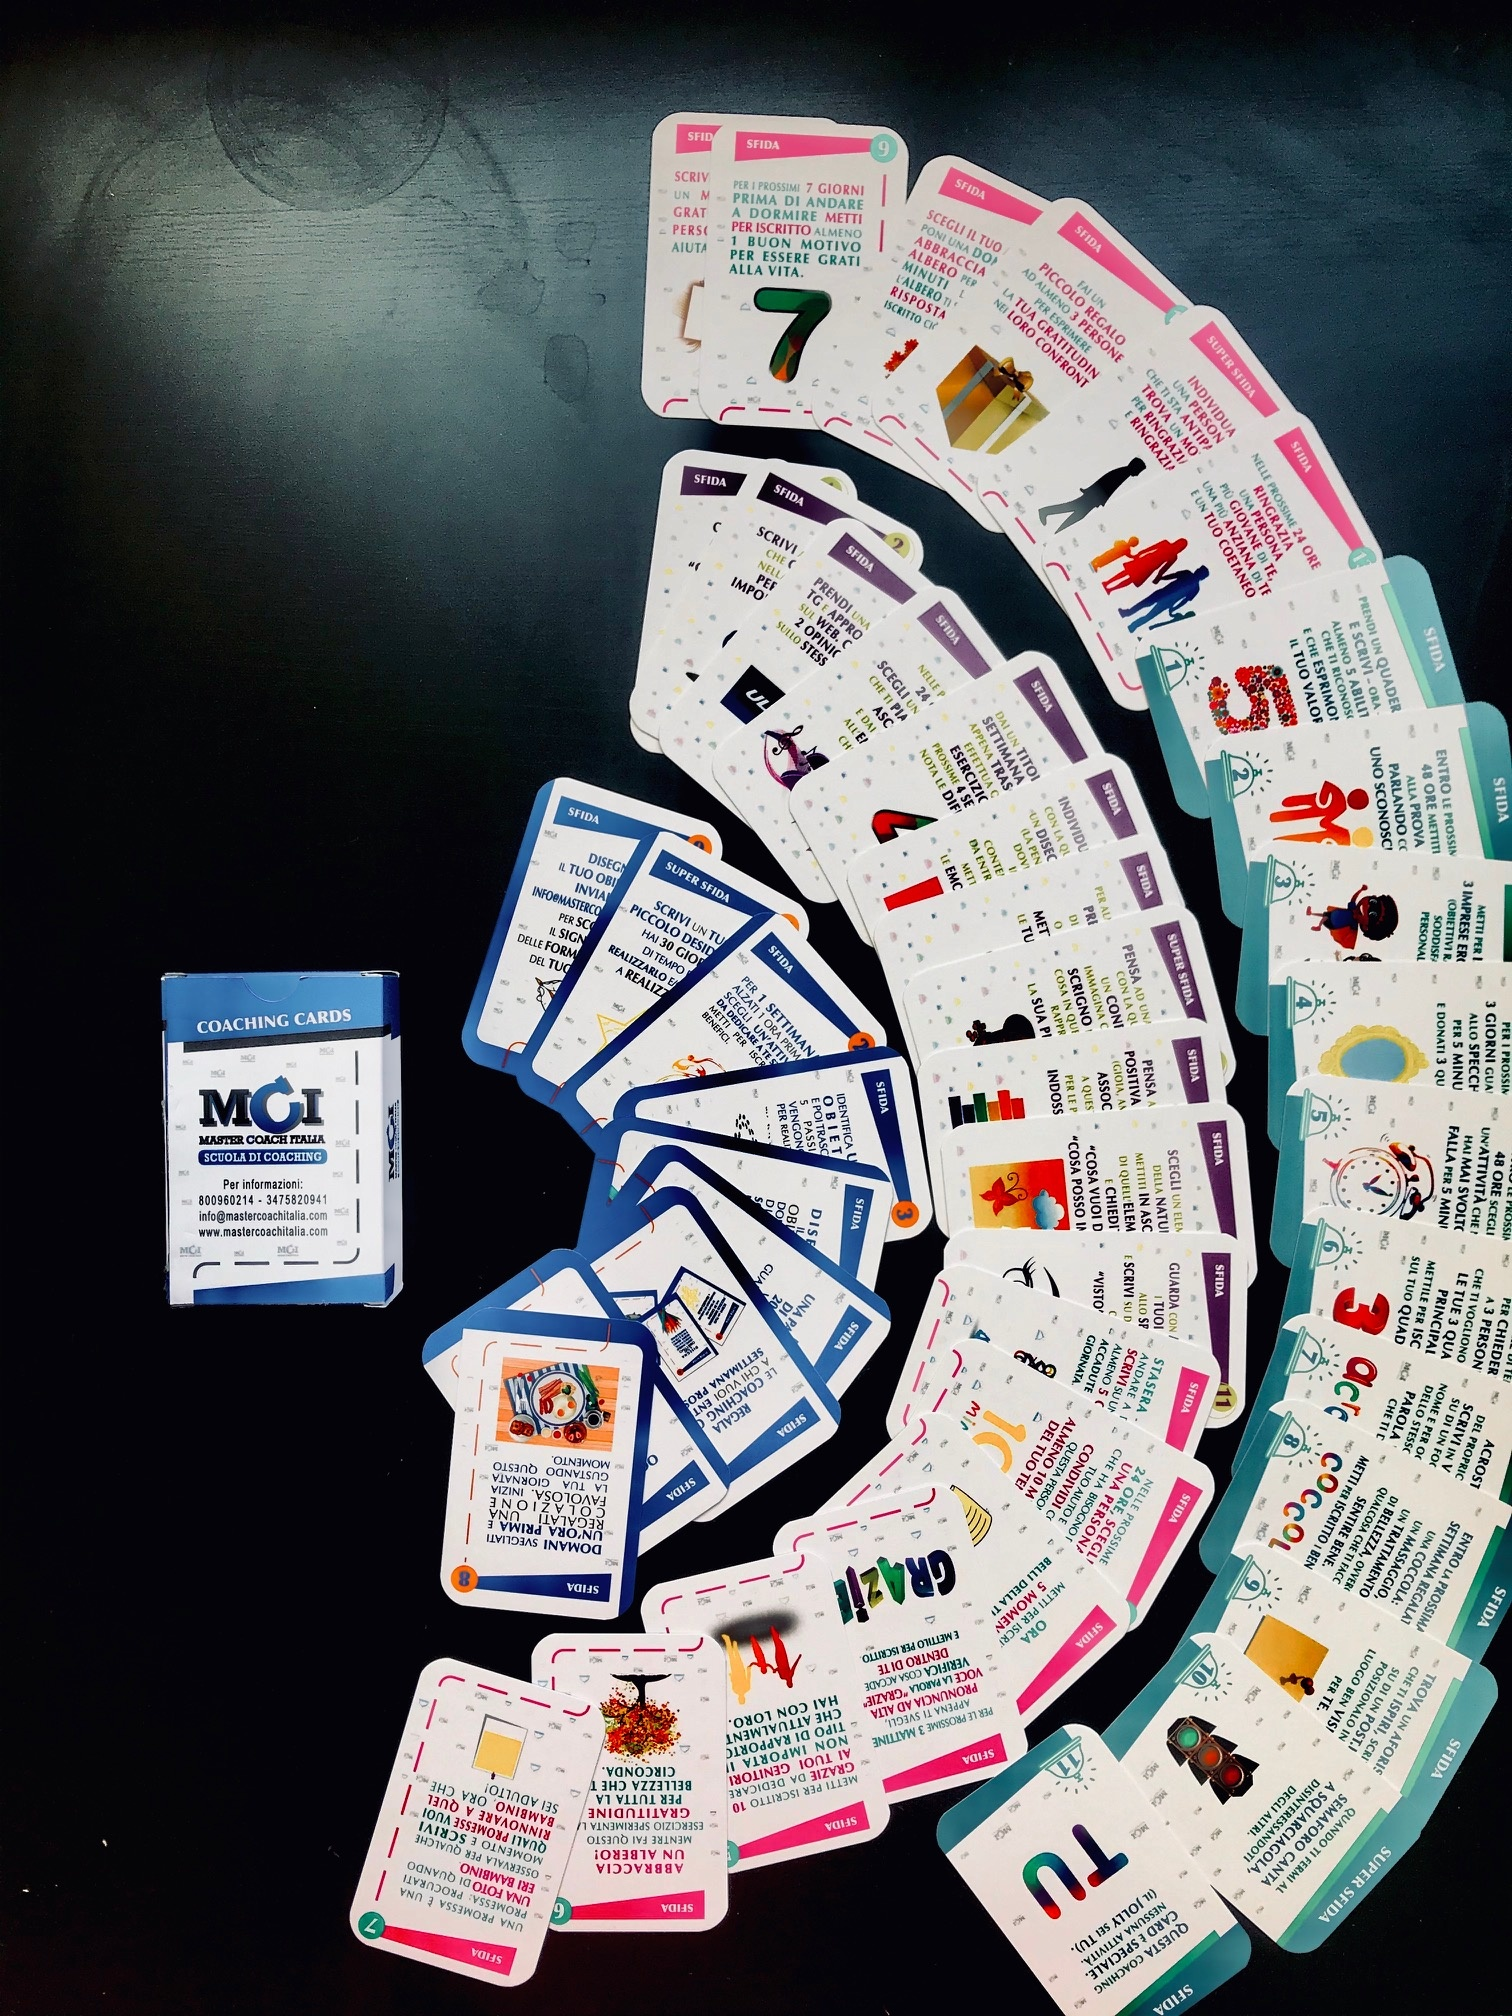 COACHING CARDS, IL GIOCO DEL SELF COACHING